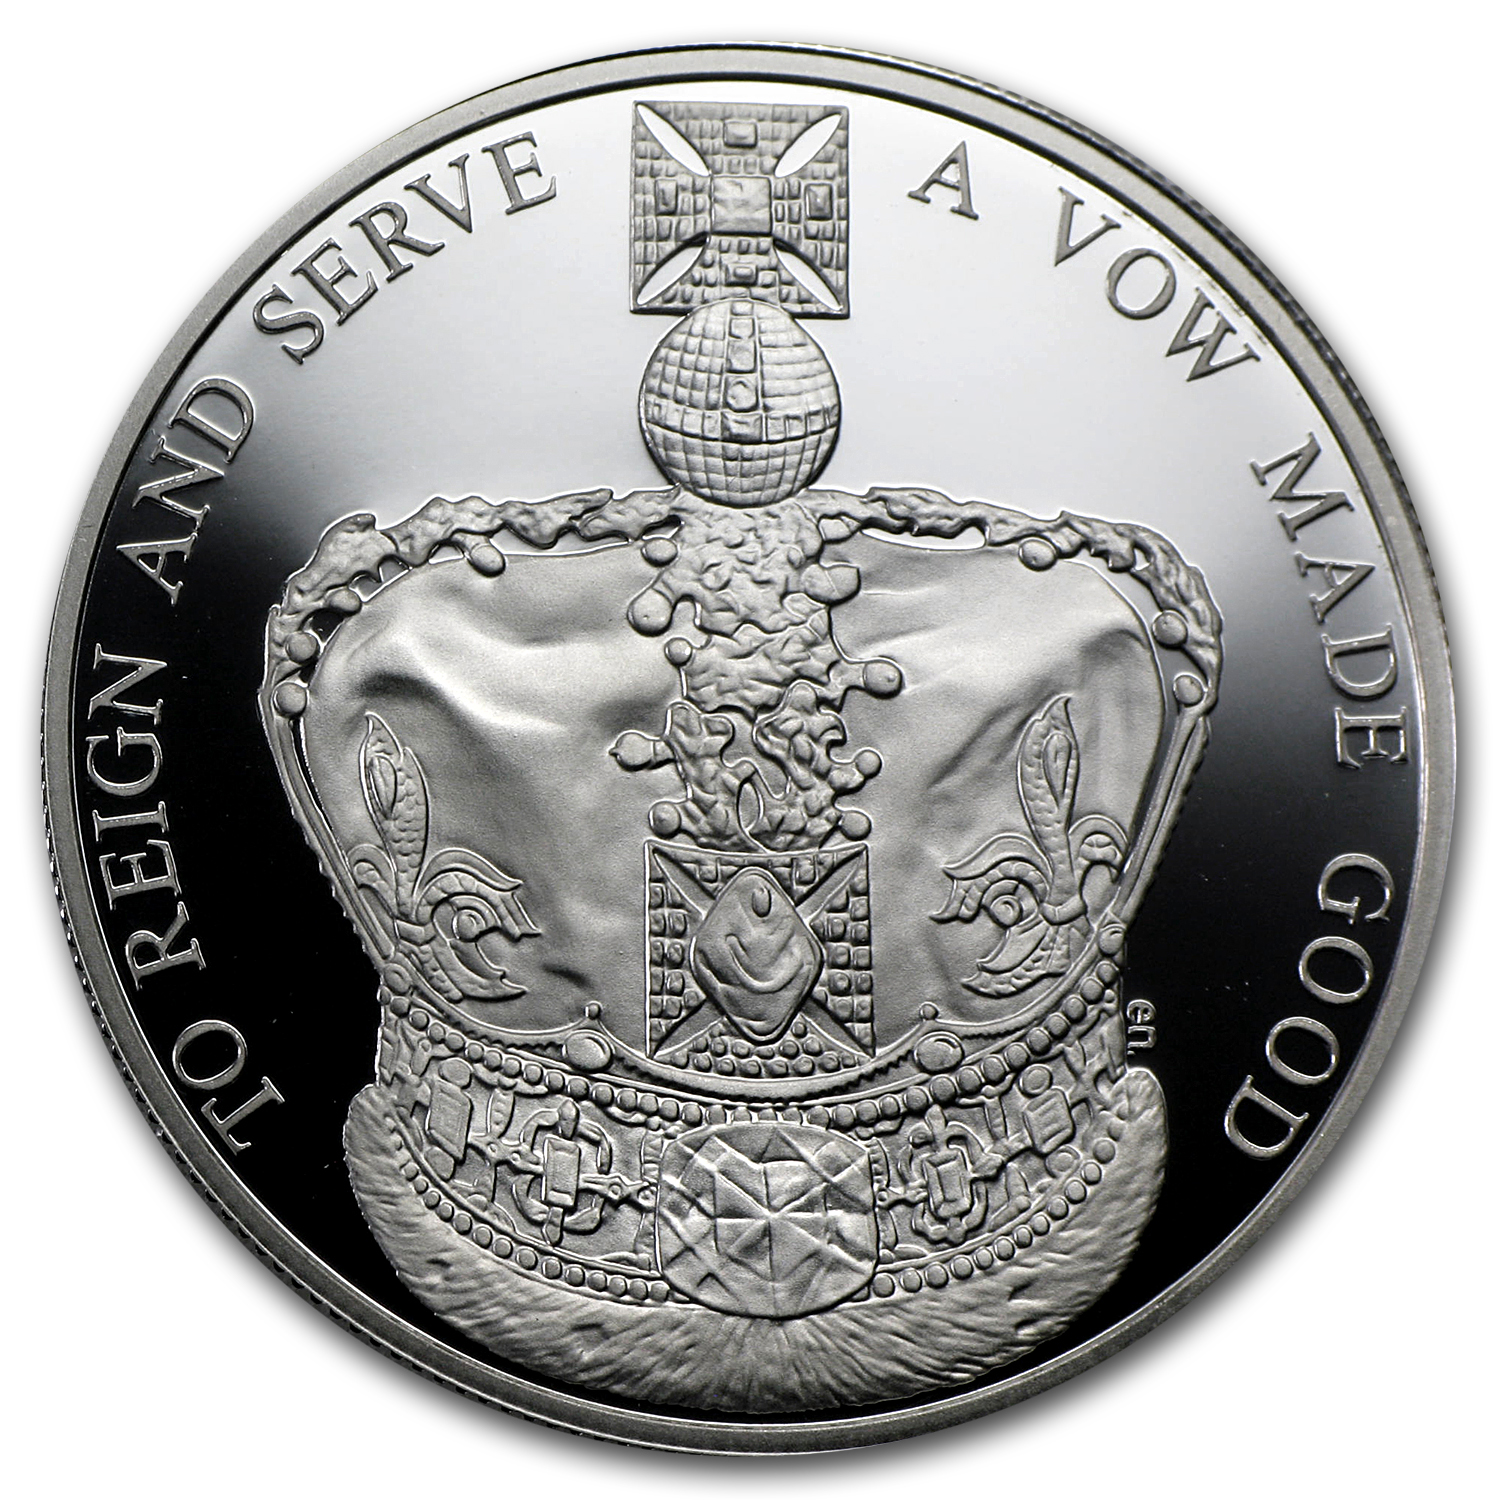 2013 Great Britain £5 Silver Piedfort - Queen's Coronation Anniv.